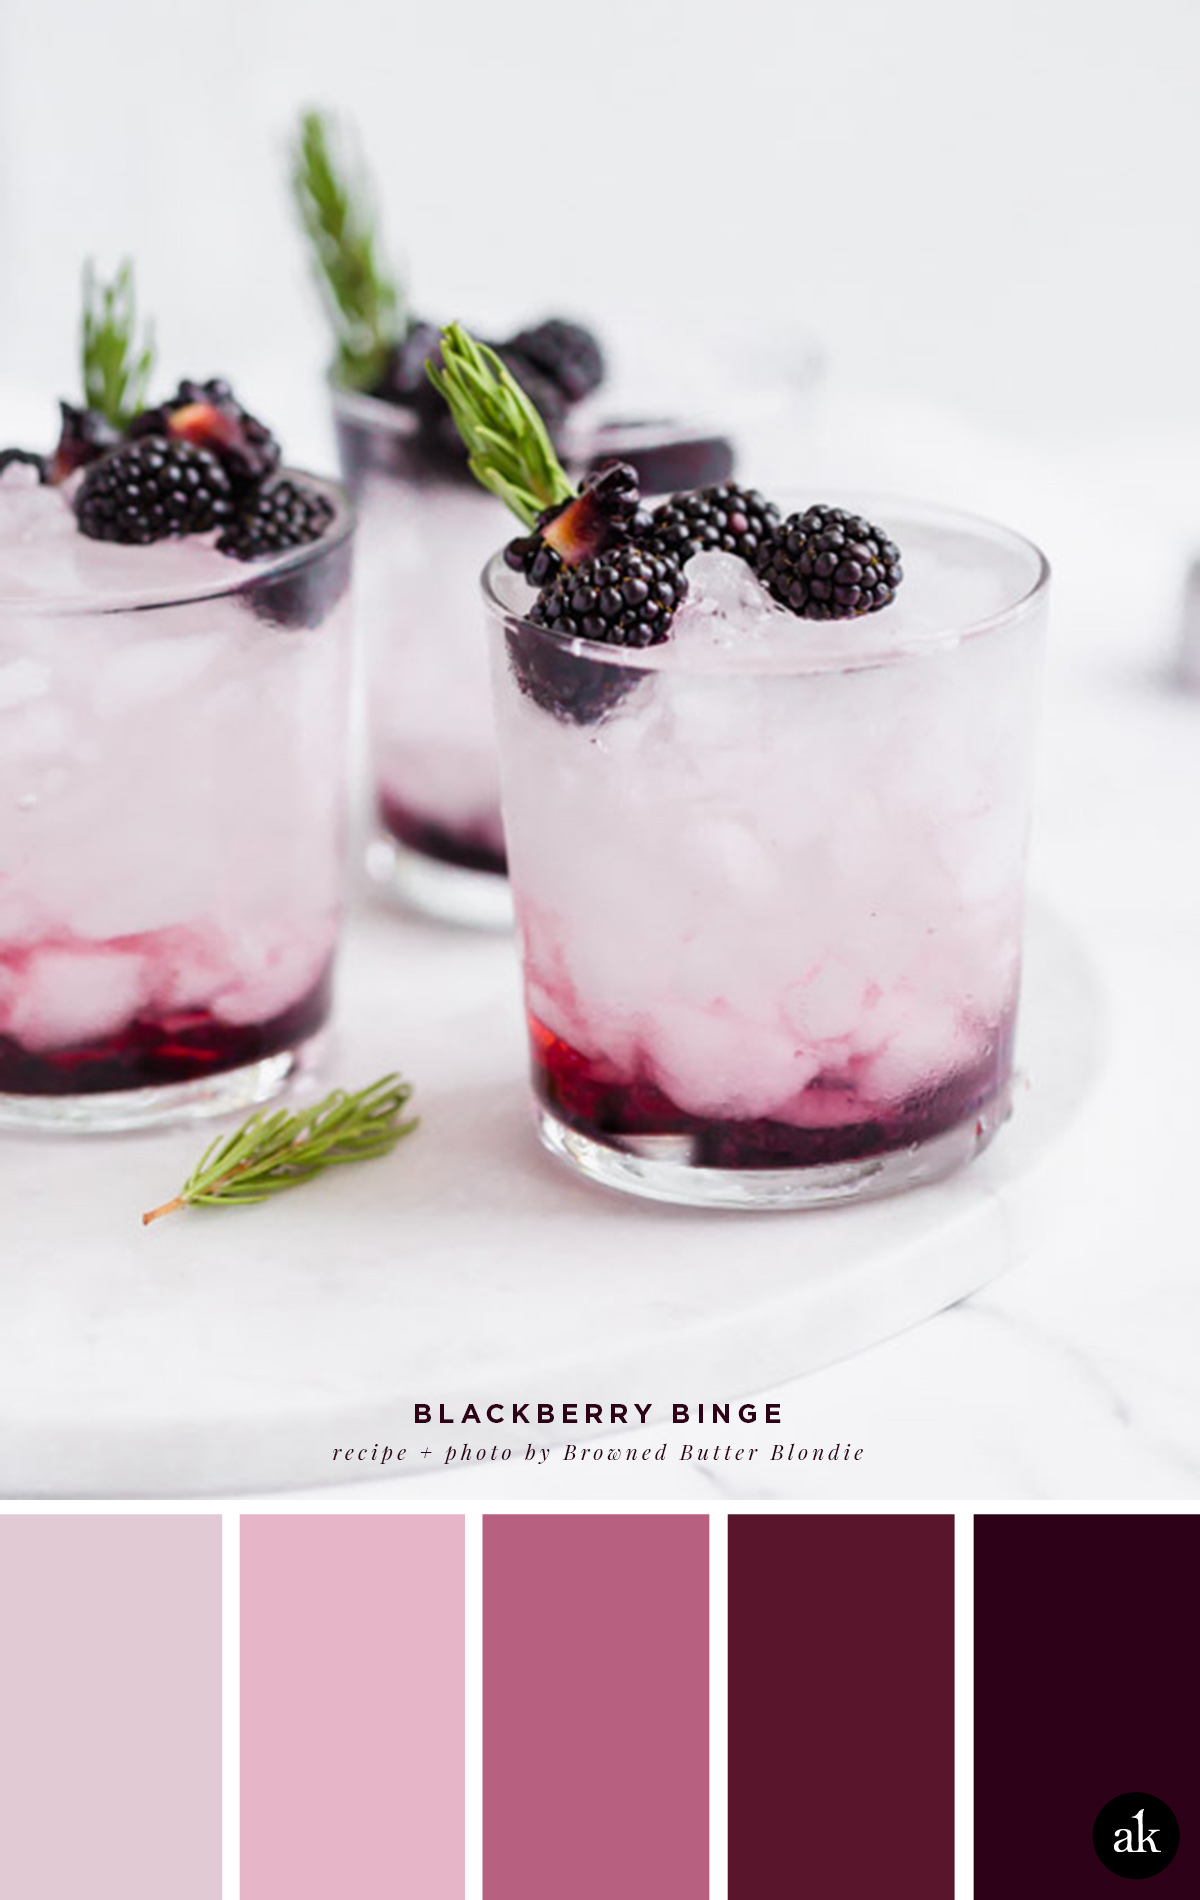 a blackberry-cocktail-inspired color palette // lavender, violet, plum // recipe and photo by Browned Butter Blondie